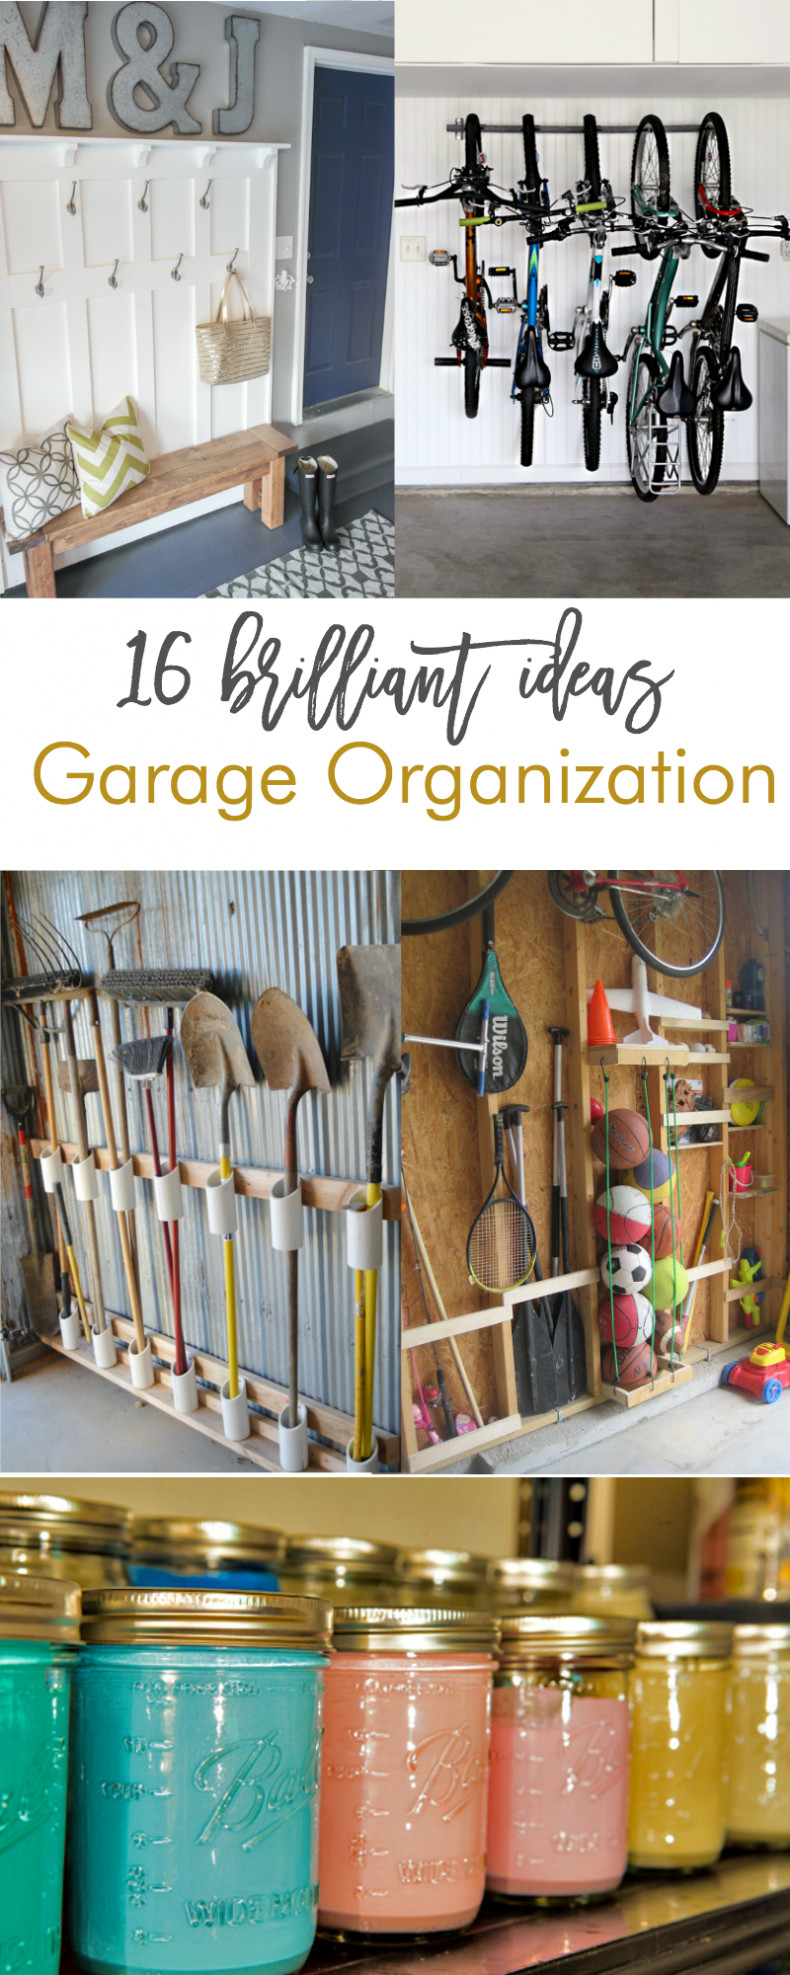 Best ideas about DIY Garage Organizing . Save or Pin 16 Brilliant DIY Garage Organization Ideas Now.